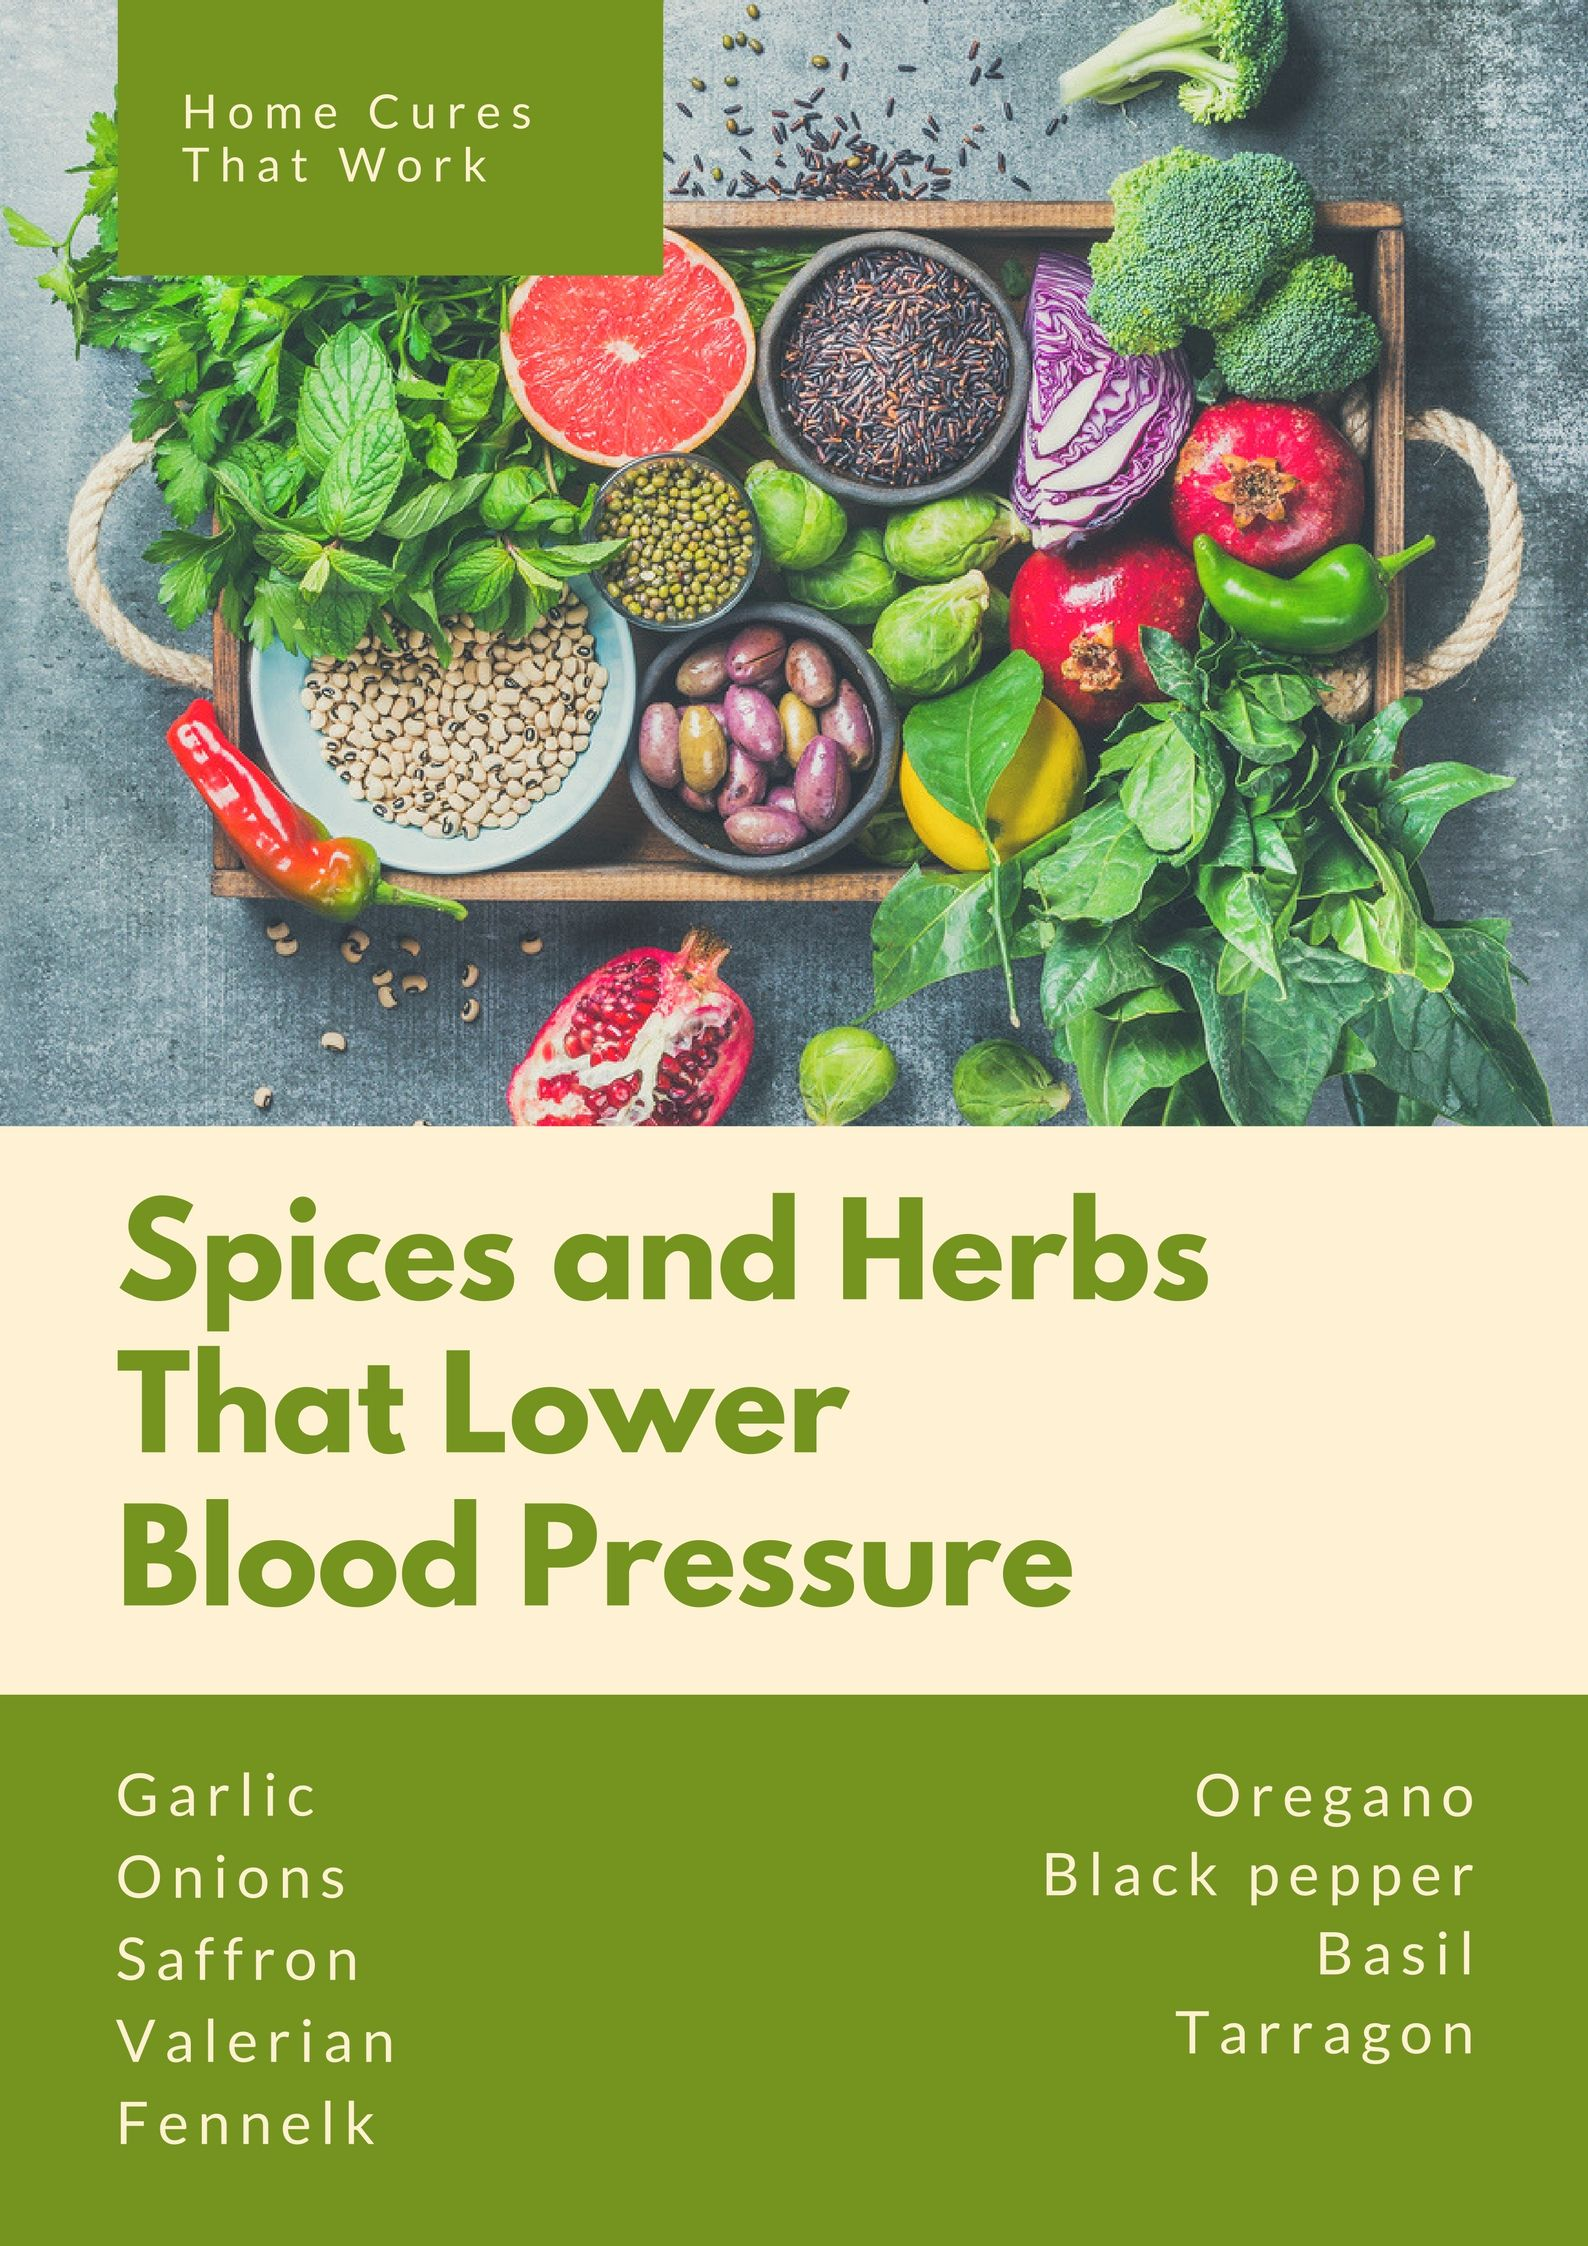 home cures from the kitchen to reduce high blood pressure | natural